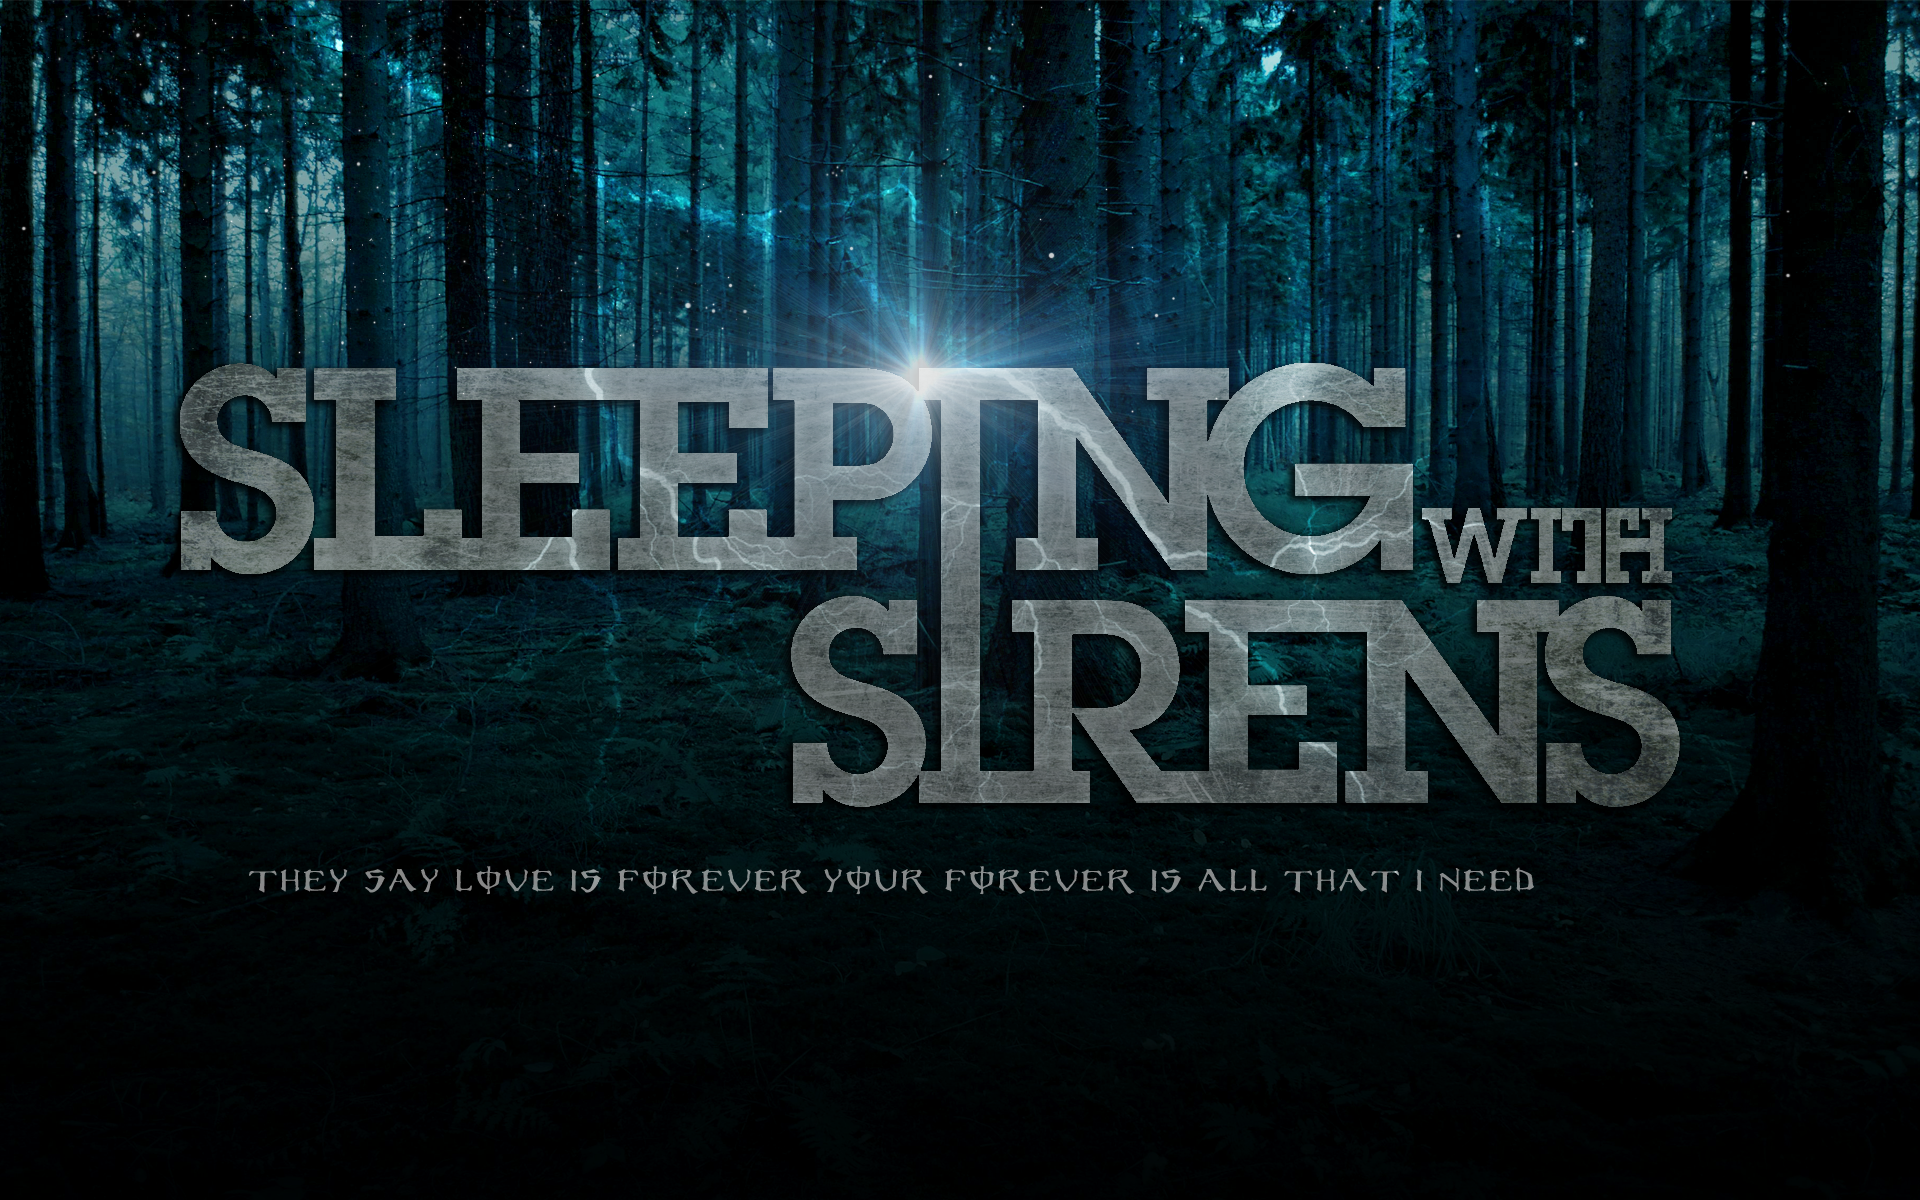 Sleeping With Sirens Quotes Facebook Covers Sleeping with sirens!